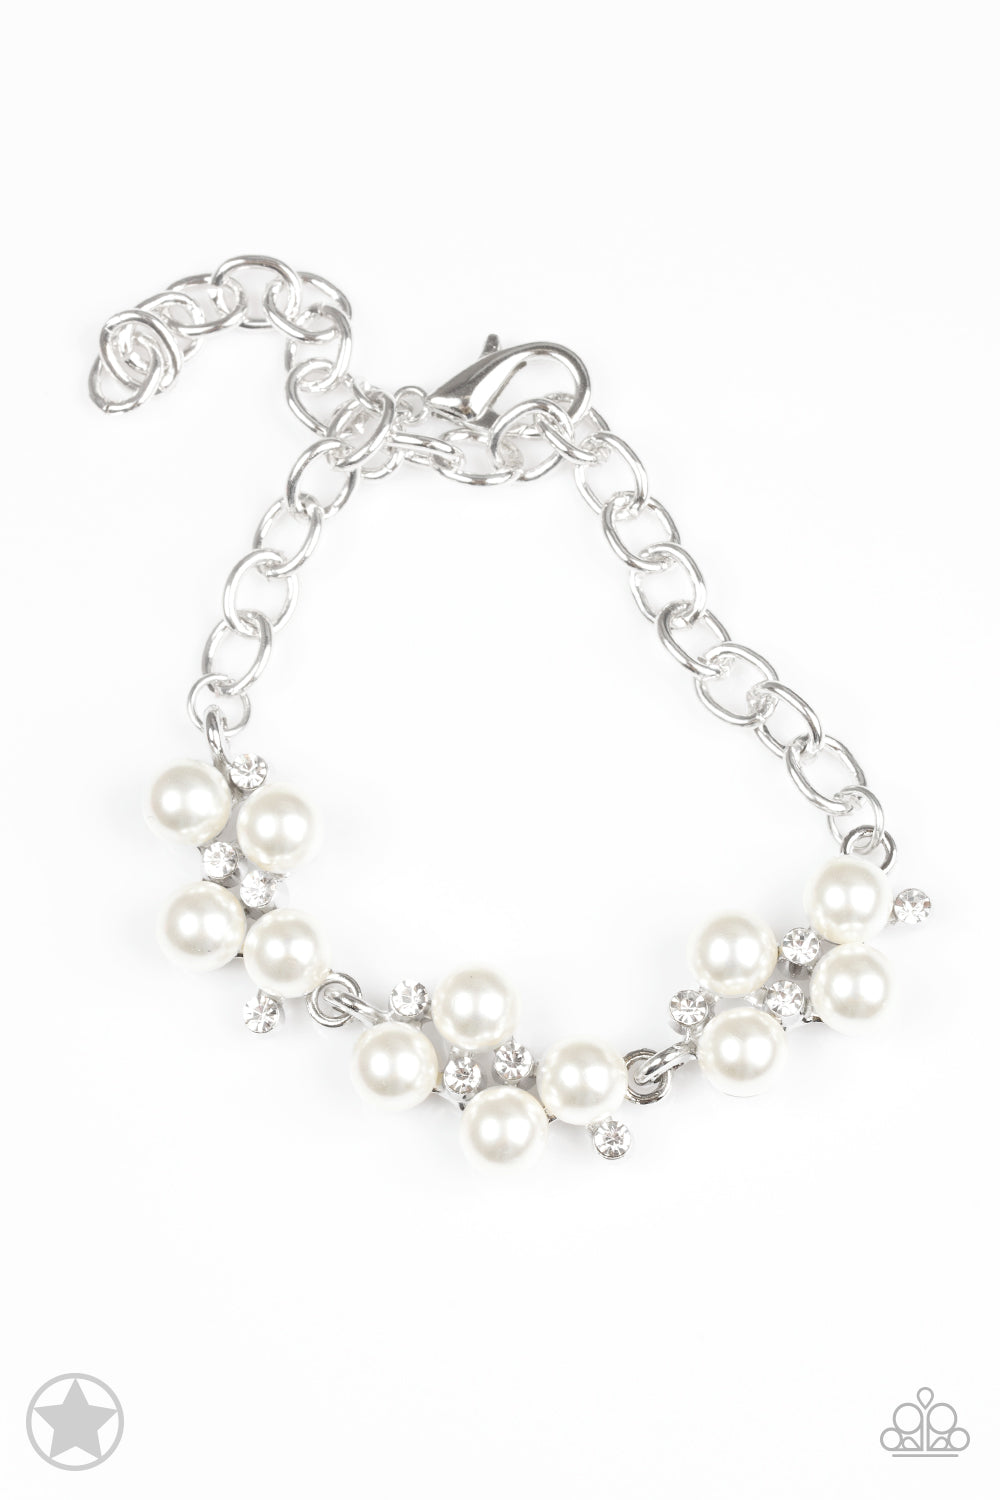 Paparazzi Accessories - I Do - White Bracelet - JMJ Jewelry Collection